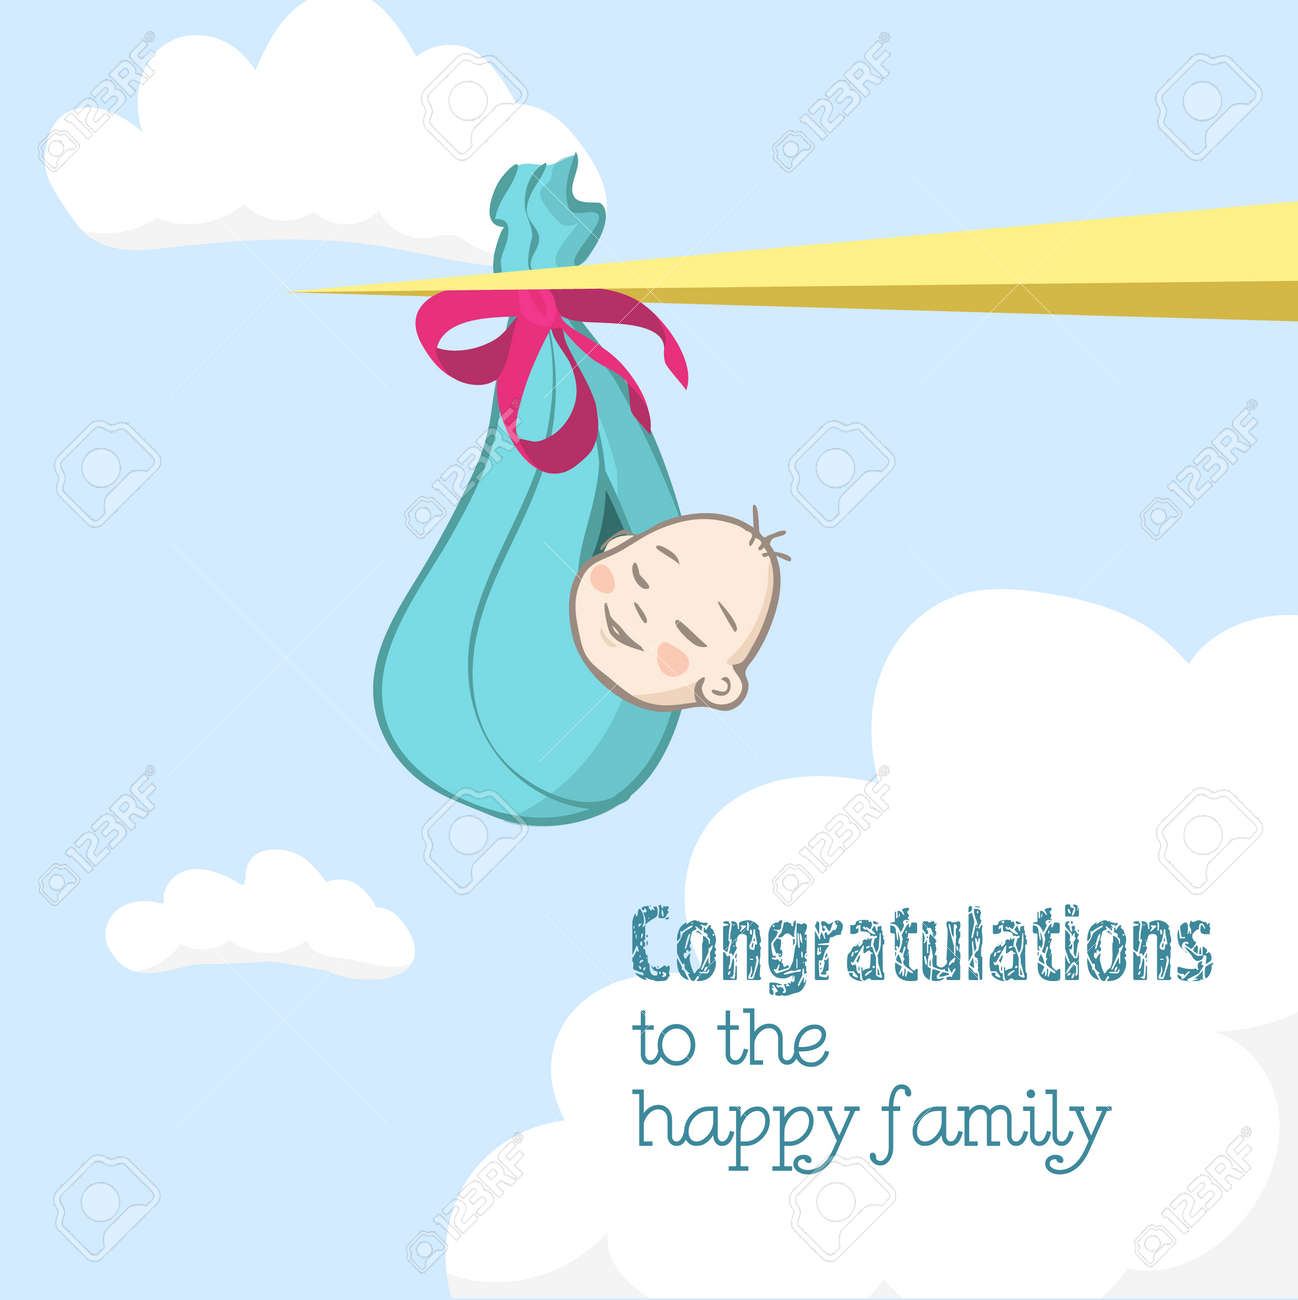 Congratulation On A Newborn Baby Ukrandiffusion